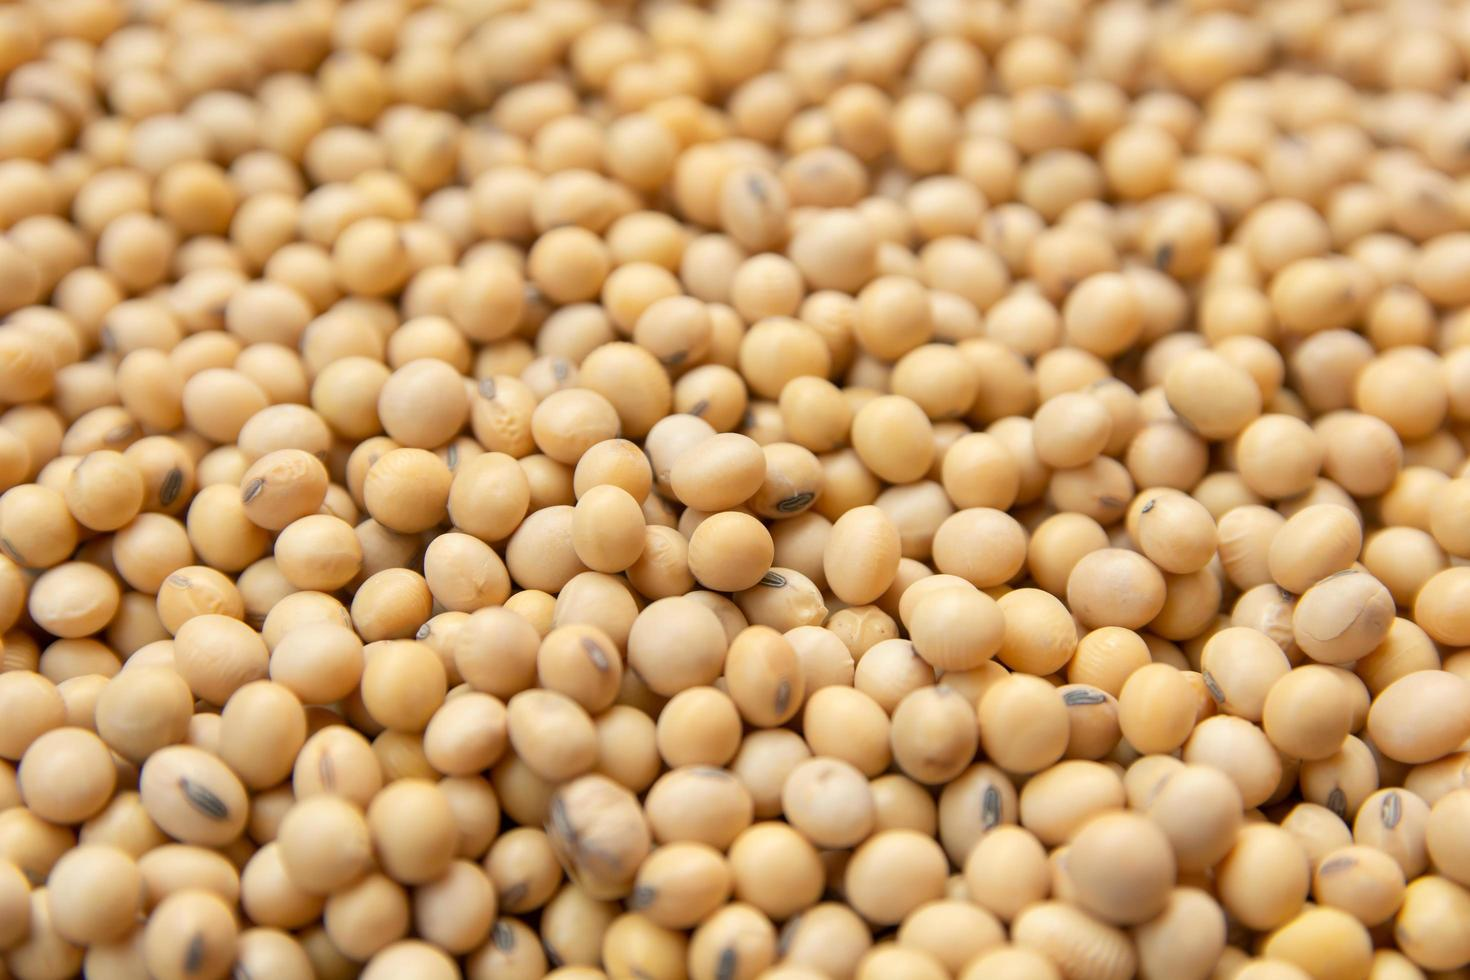 Close-up of soybeans photo